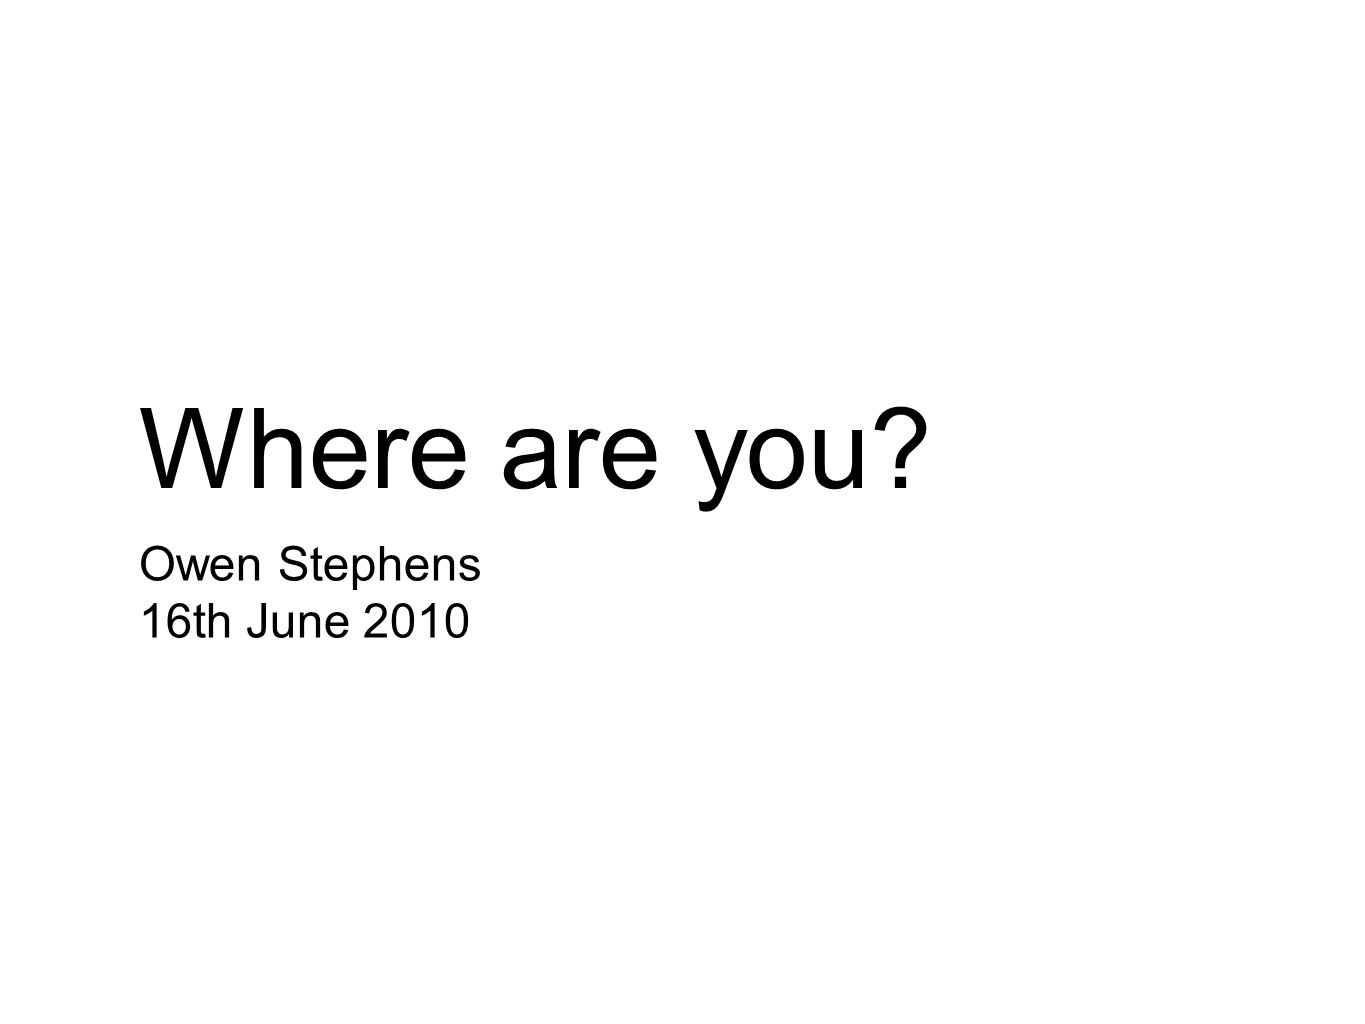 Where are you Owen Stephens 16th June 2010